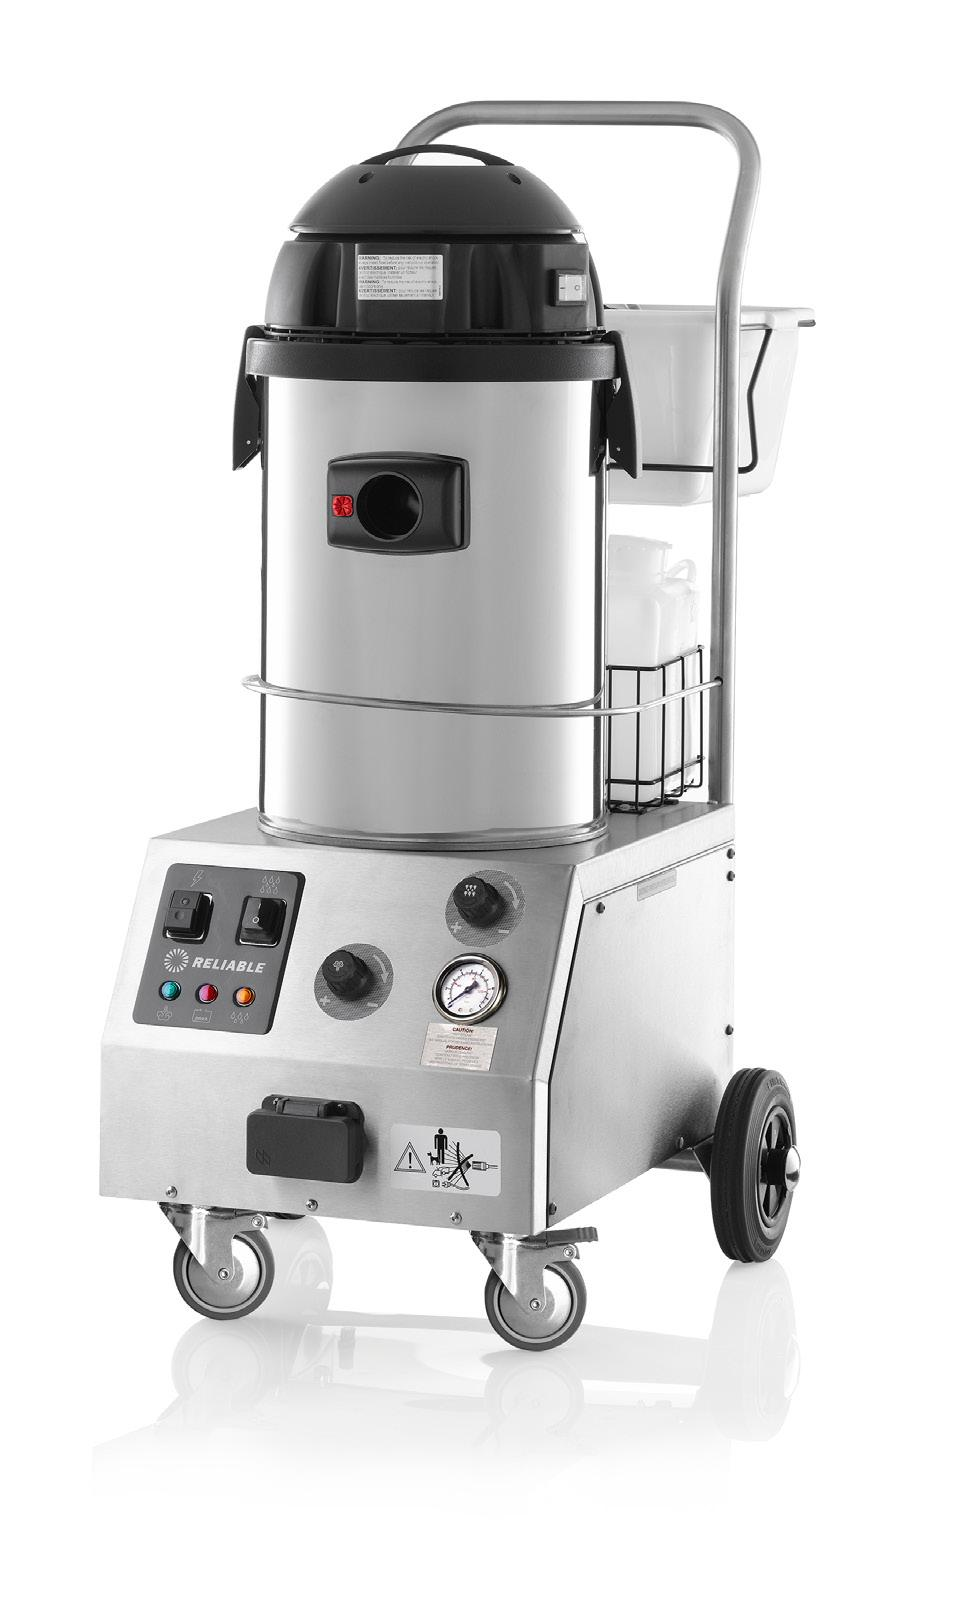 TANDEM PRO 2000CV COMMERCIAL STEAM CLEANER WITH CSS AND WET & DRY VACUUM CLEANER TOUGH AS NAILS The Tandem Pro is a multi-use cleaning unit.